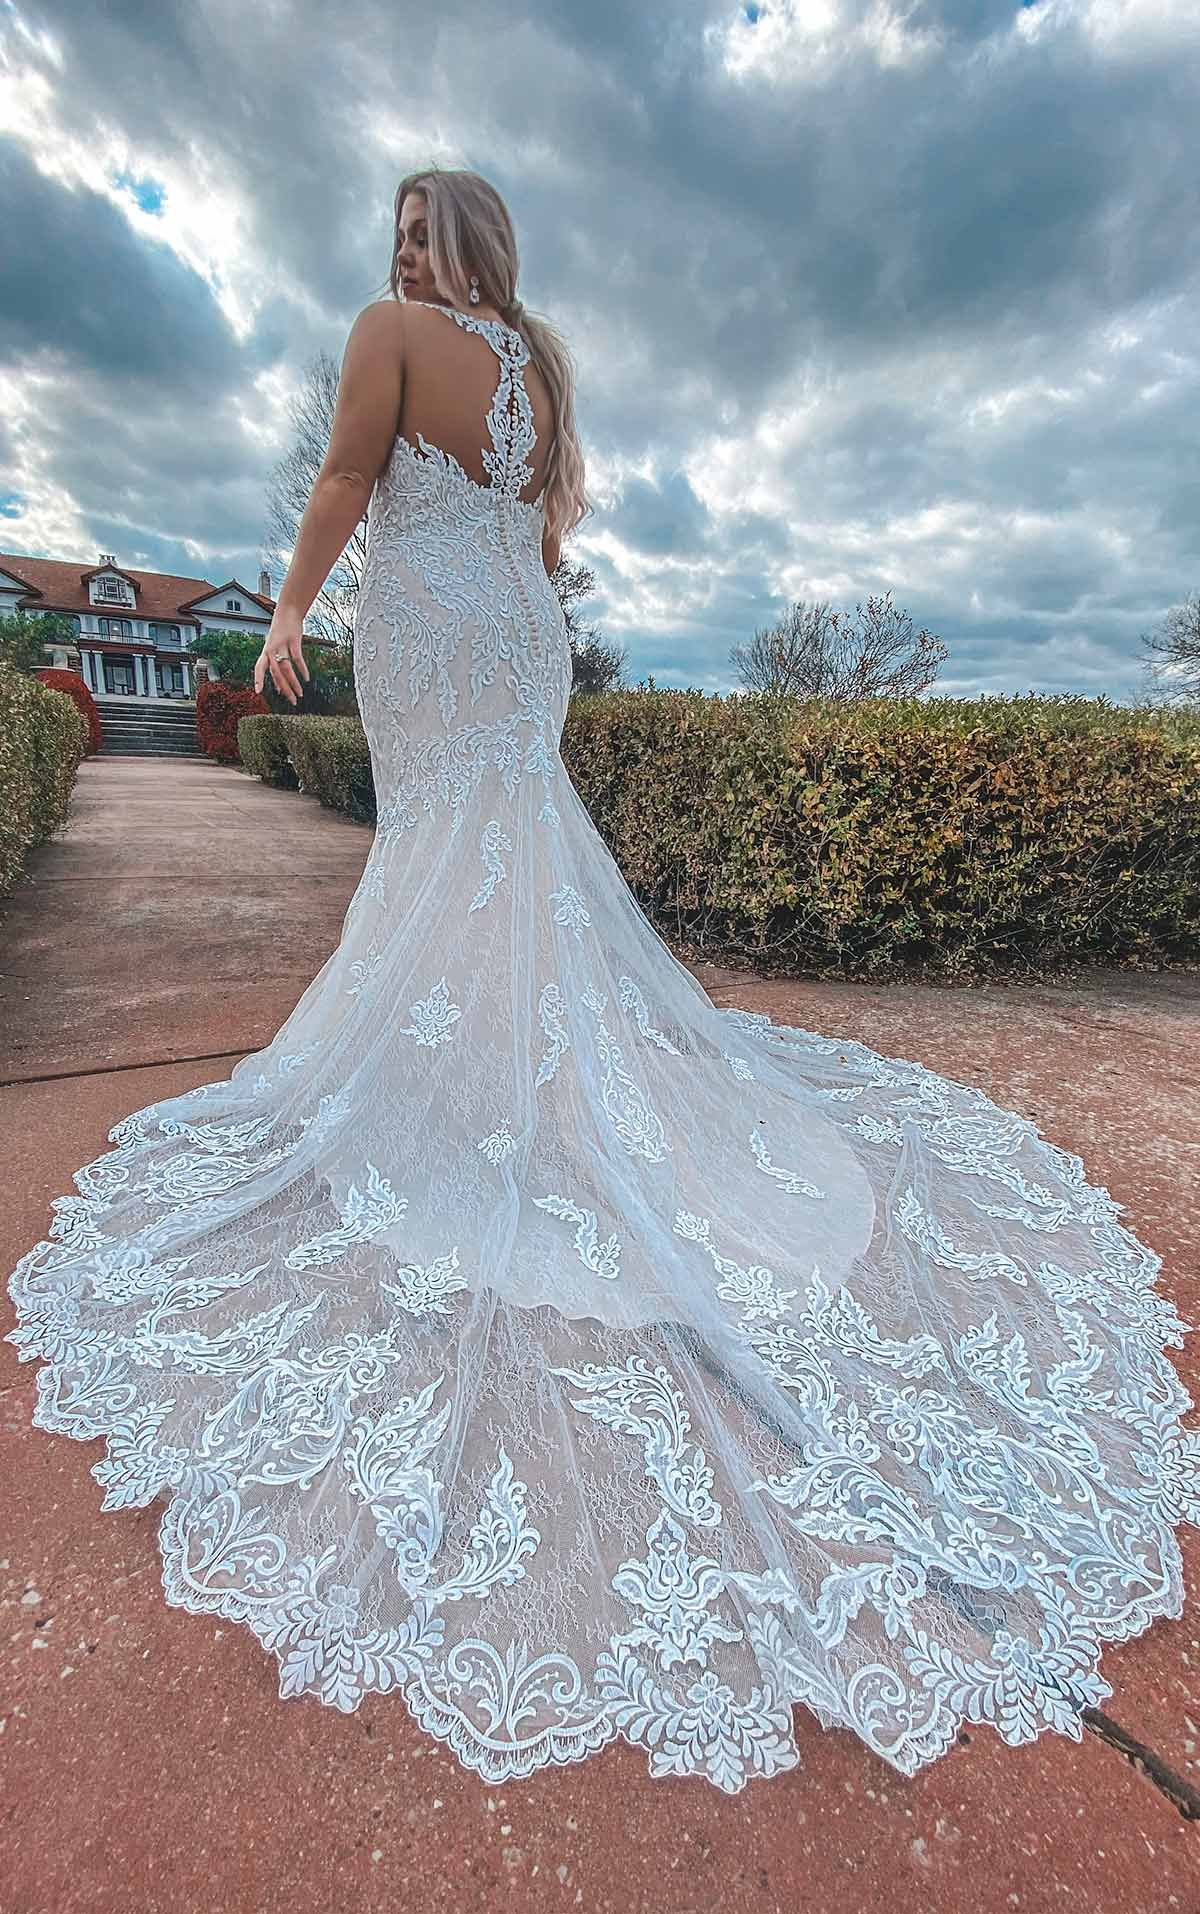 Lace Halter Plus Size Wedding Dress With Back Detail Stella York Wedding Dresses Fitted Lace Wedding Dress Wedding Dresses Lace Wedding Dress Brands [ 1914 x 1200 Pixel ]